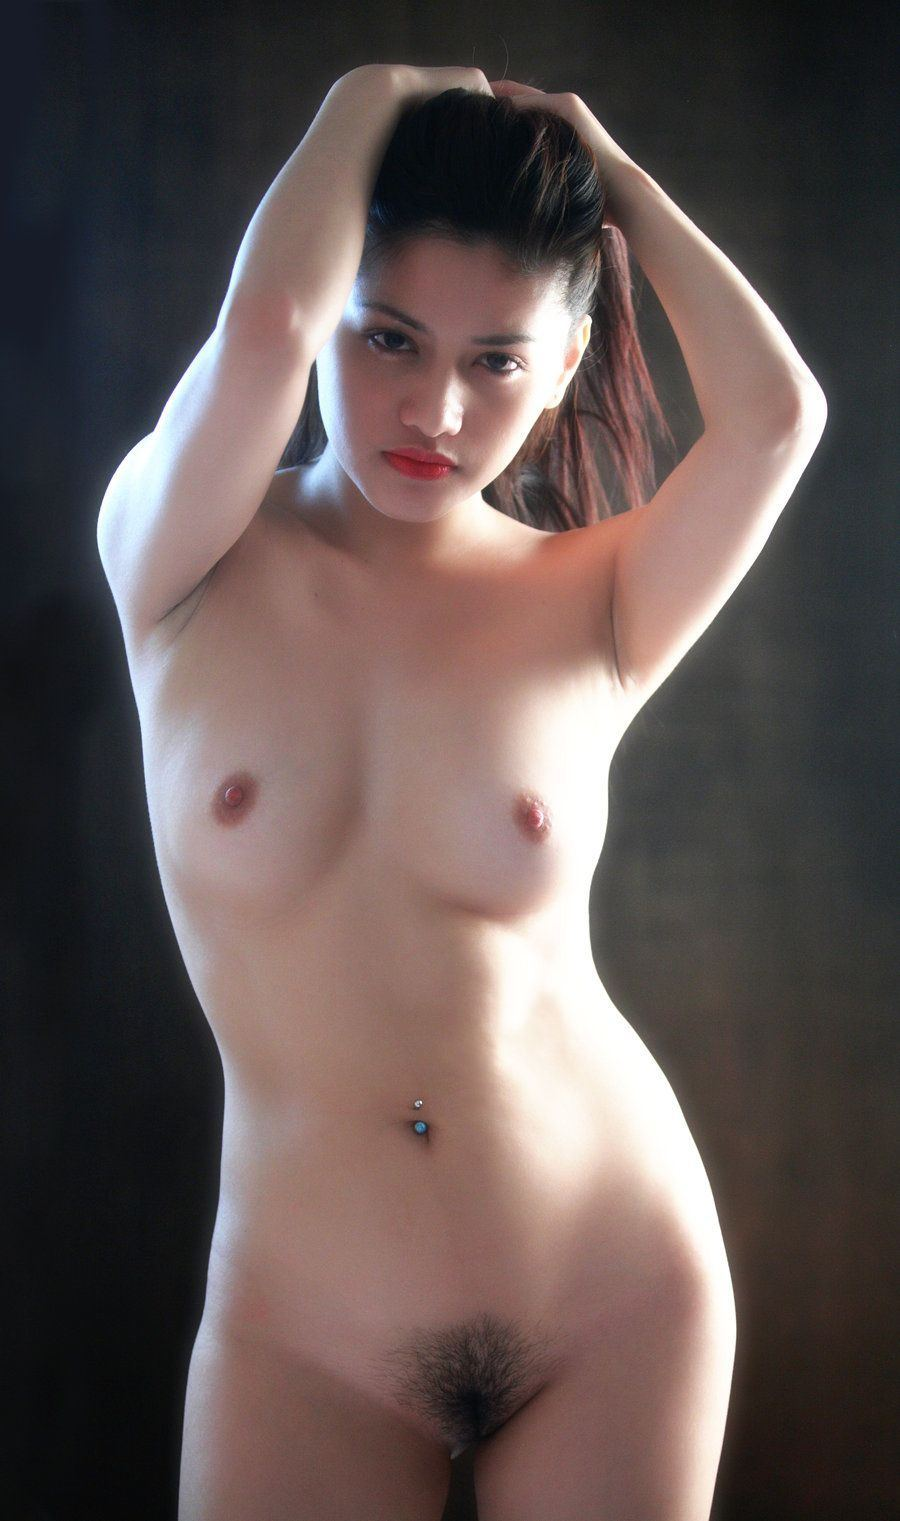 Gurls dare to be naked